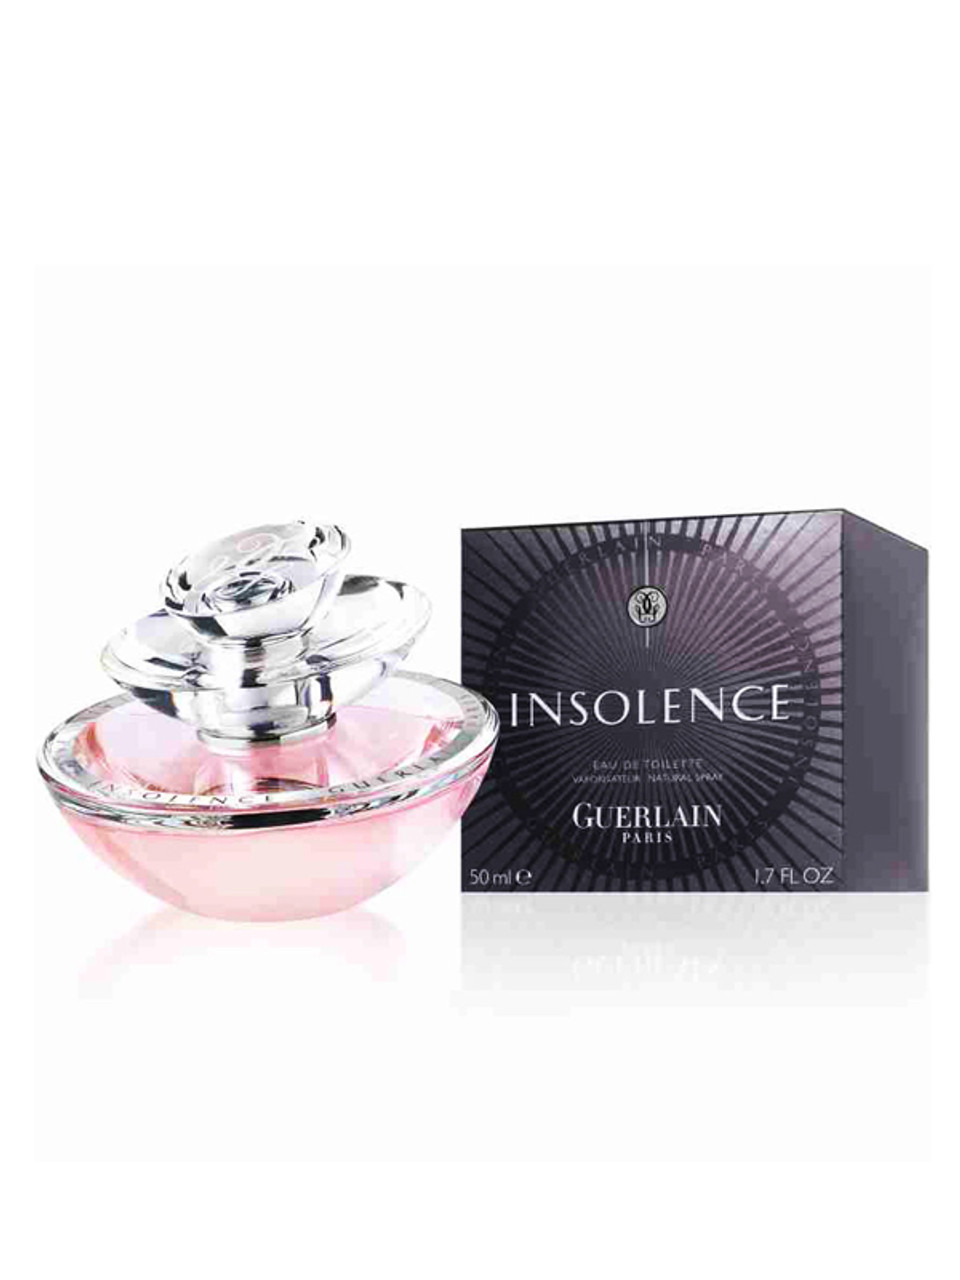 Guerlain For Insolence Insolence Insolence Women For Women Guerlain By By Guerlain By b76yIgvYf